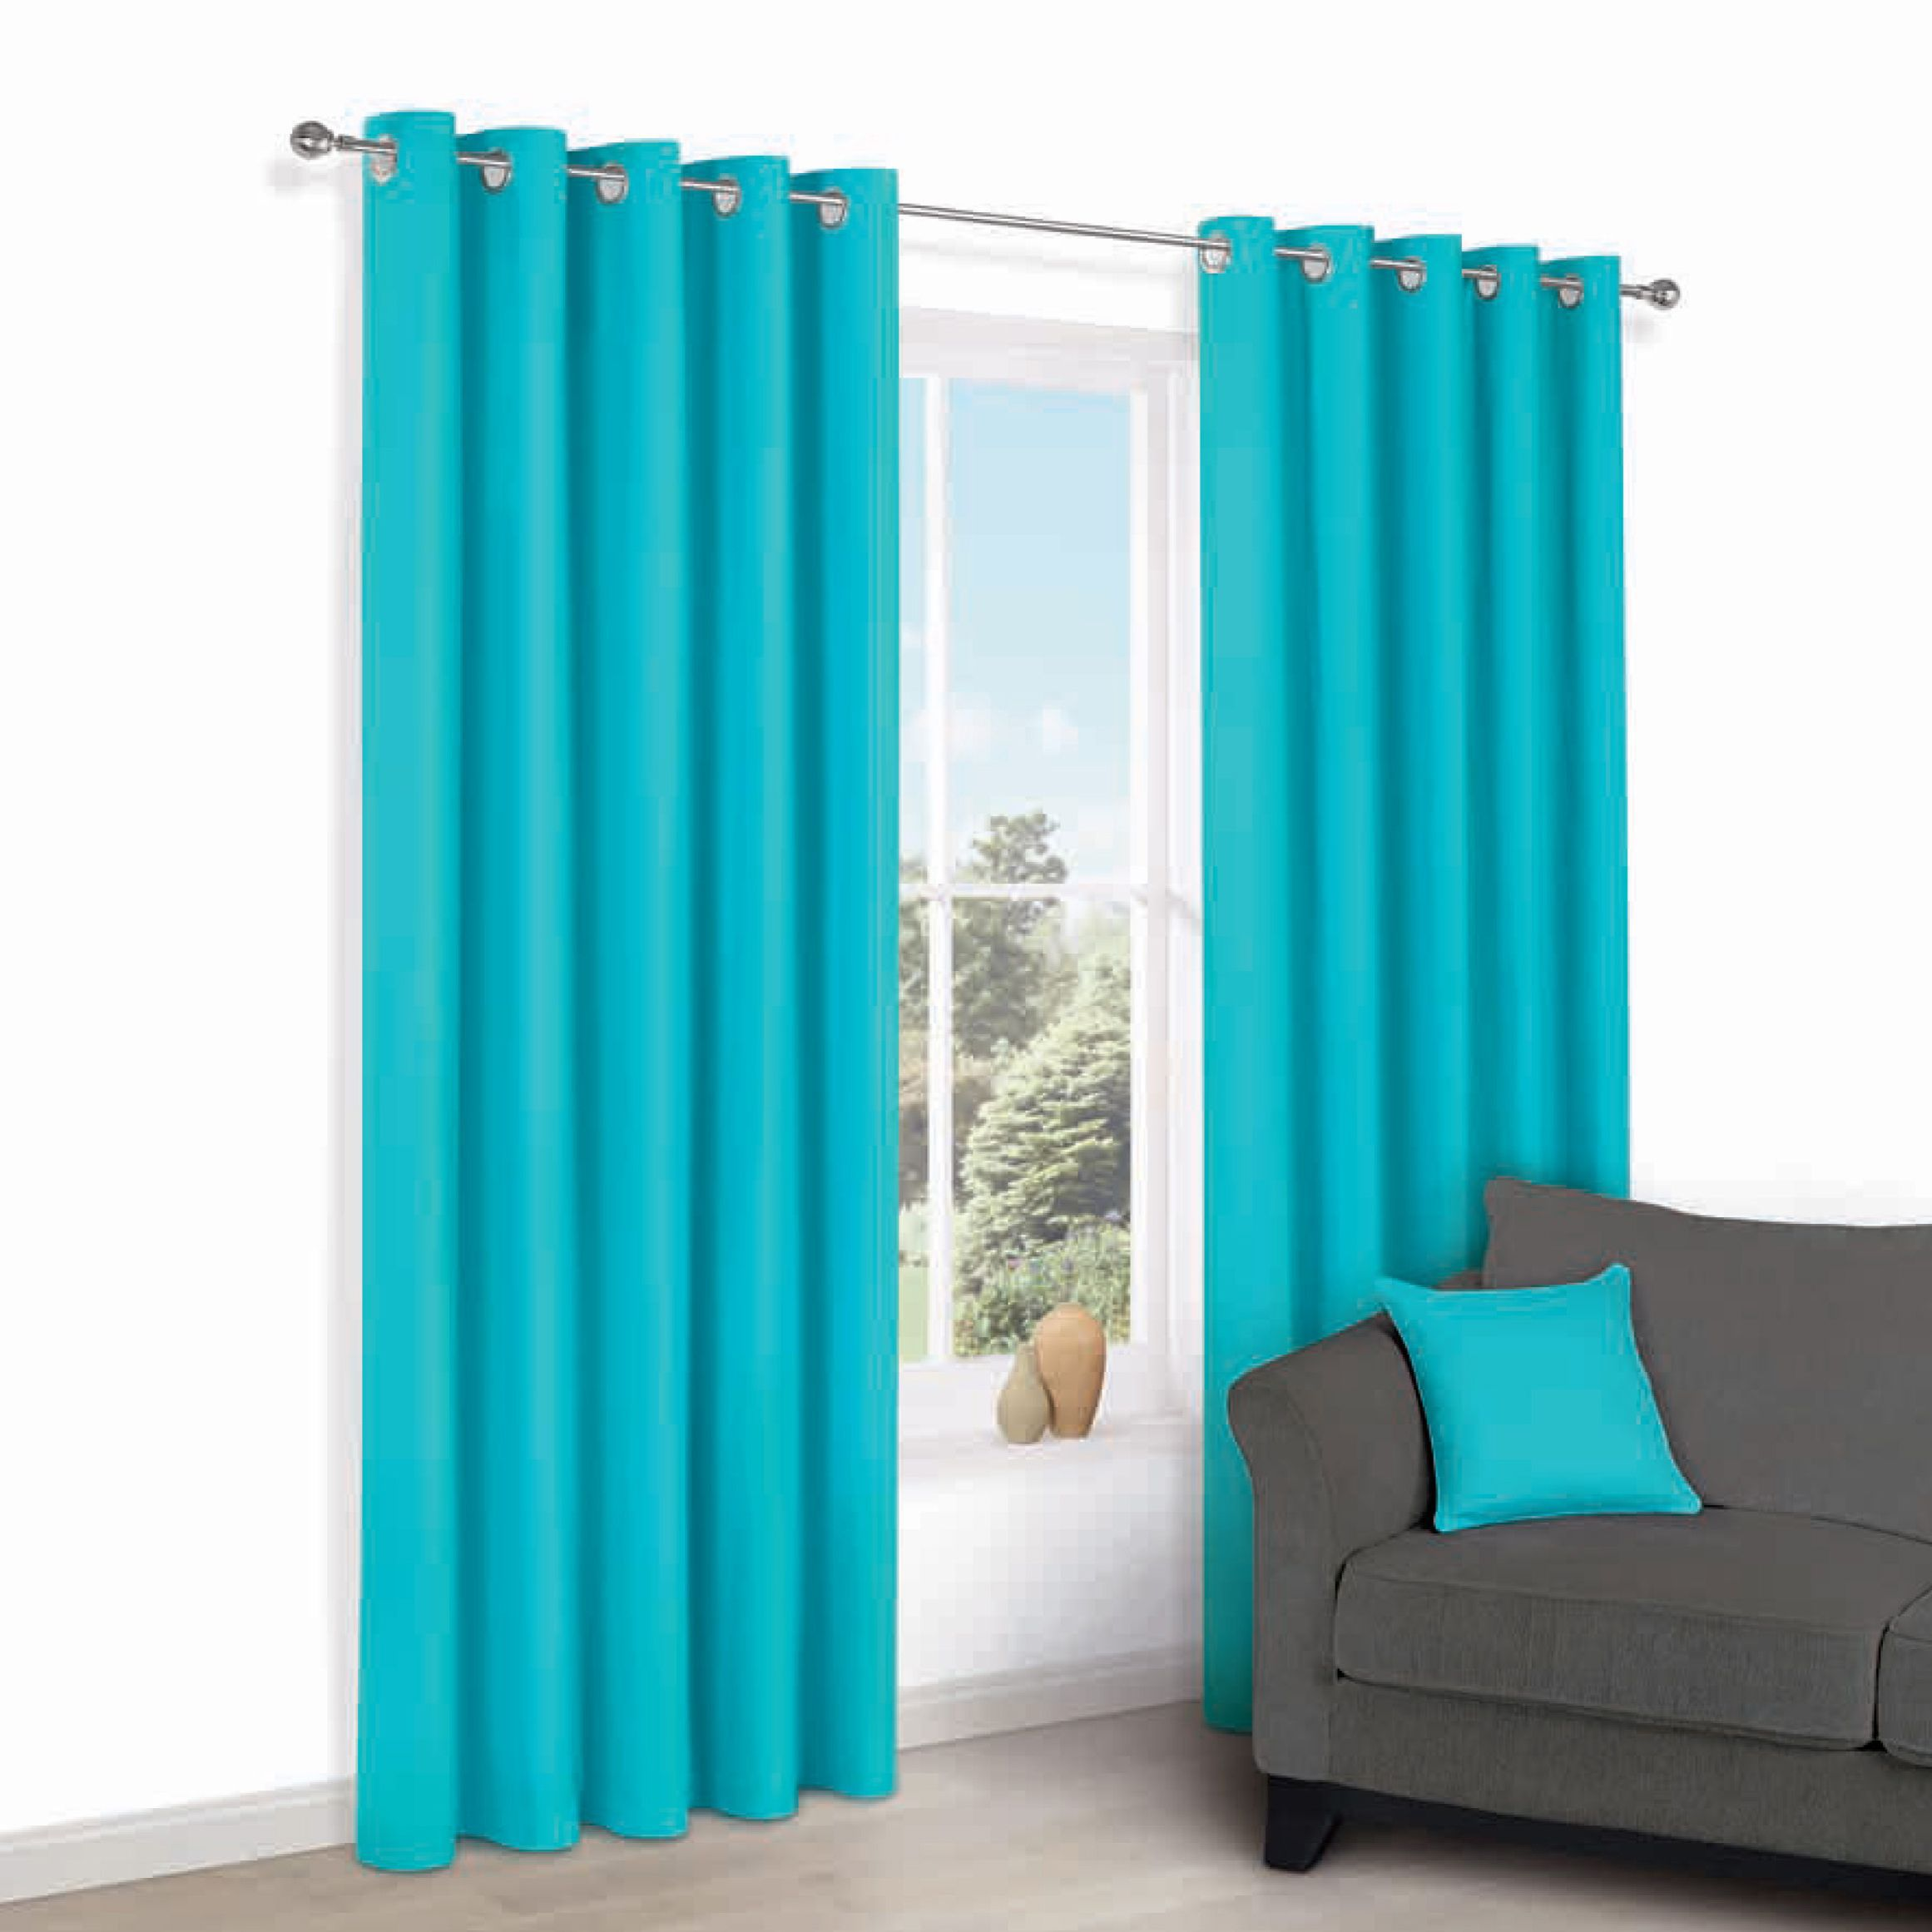 Zen Teal Plain Eyelet Curtains (w)167cm (l)228cm